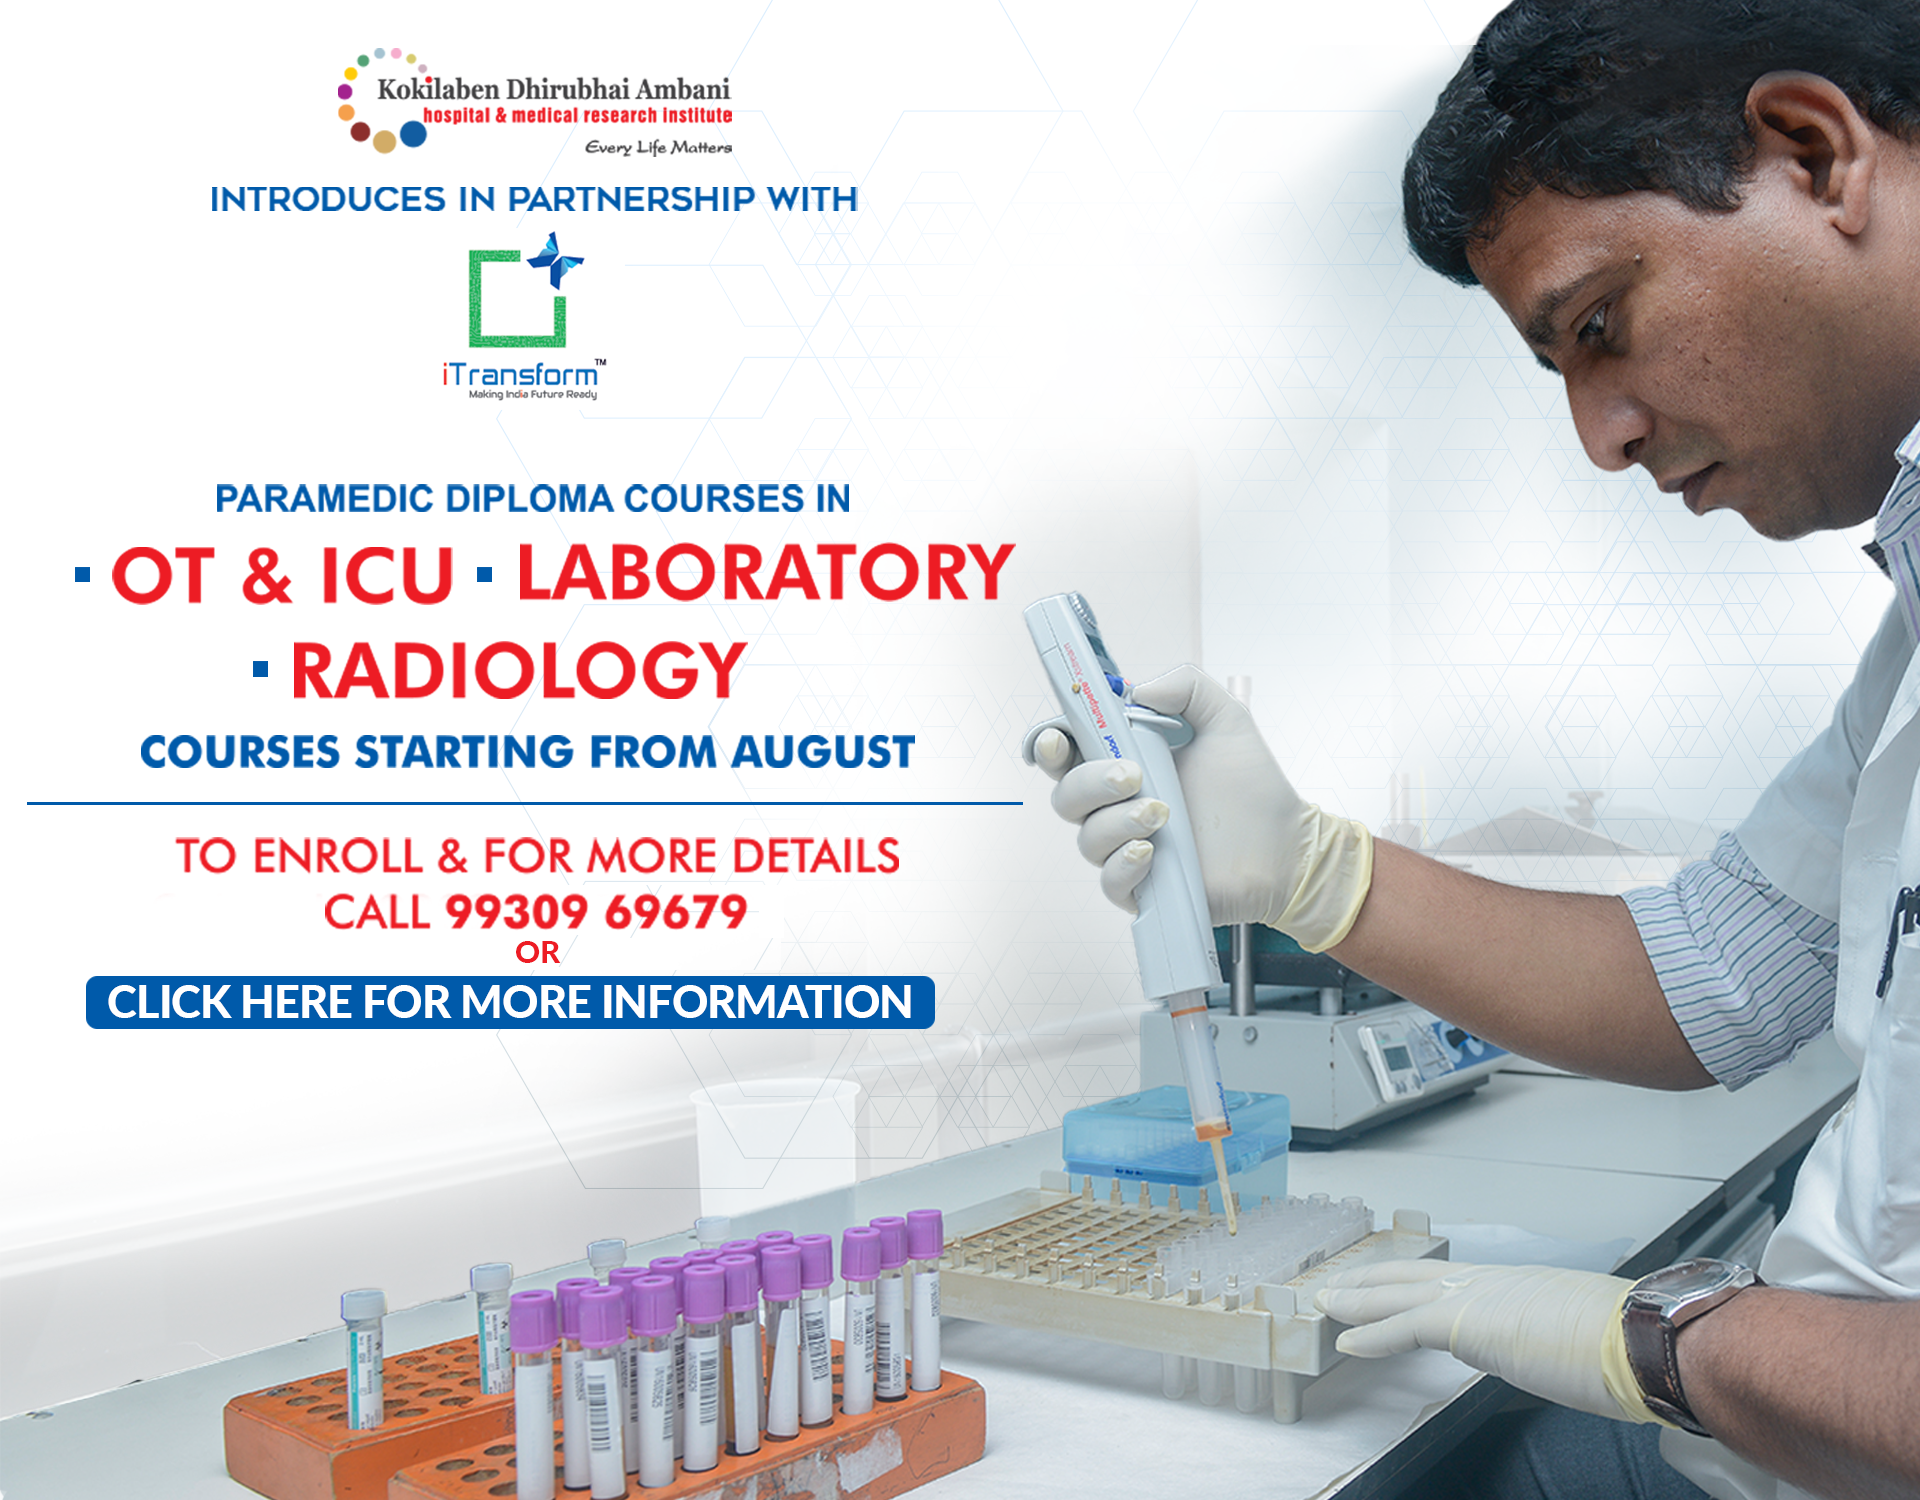 Kokilaben Dhirubhai Ambani Hospital - Paramedic Diploma Courses in OT & ICU, Laboratory and Radiology